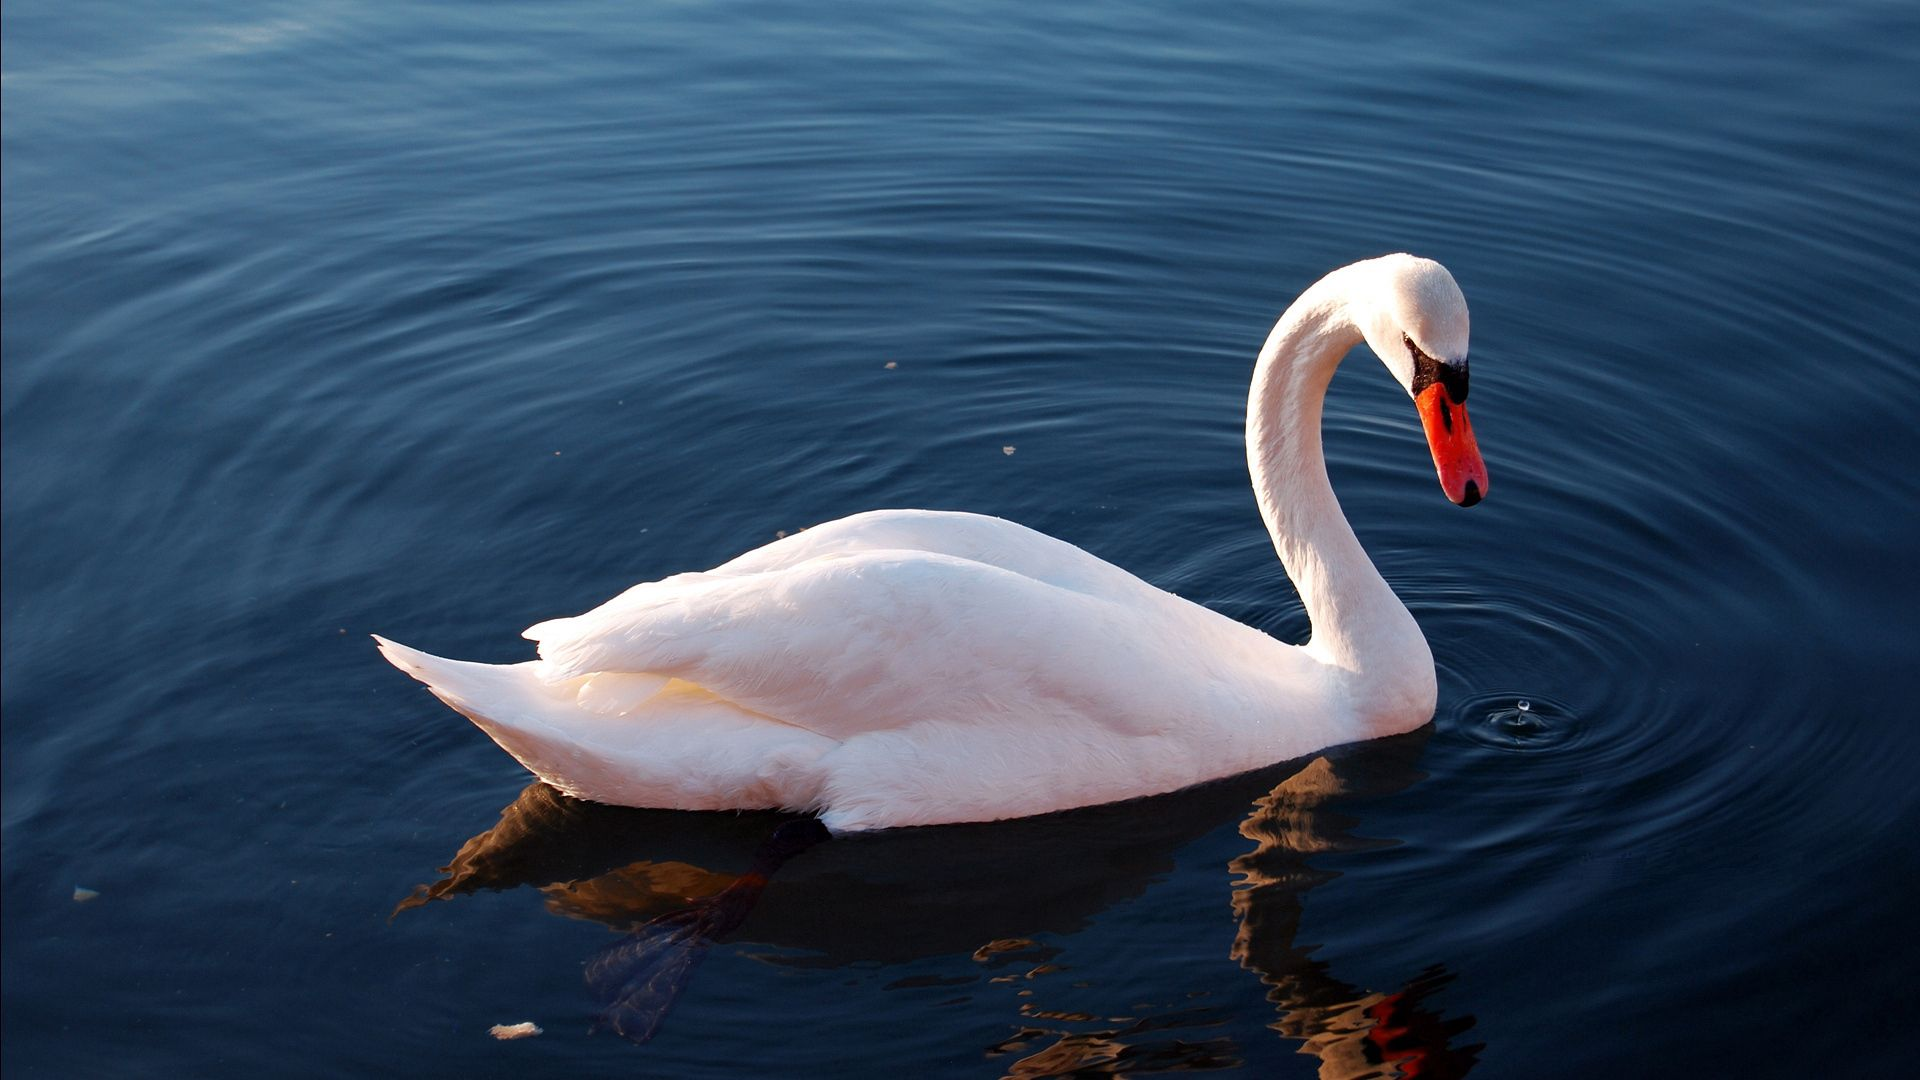 99998 download wallpaper Animals, Water, Feather, Bird, To Swim, Swim, Swan screensavers and pictures for free